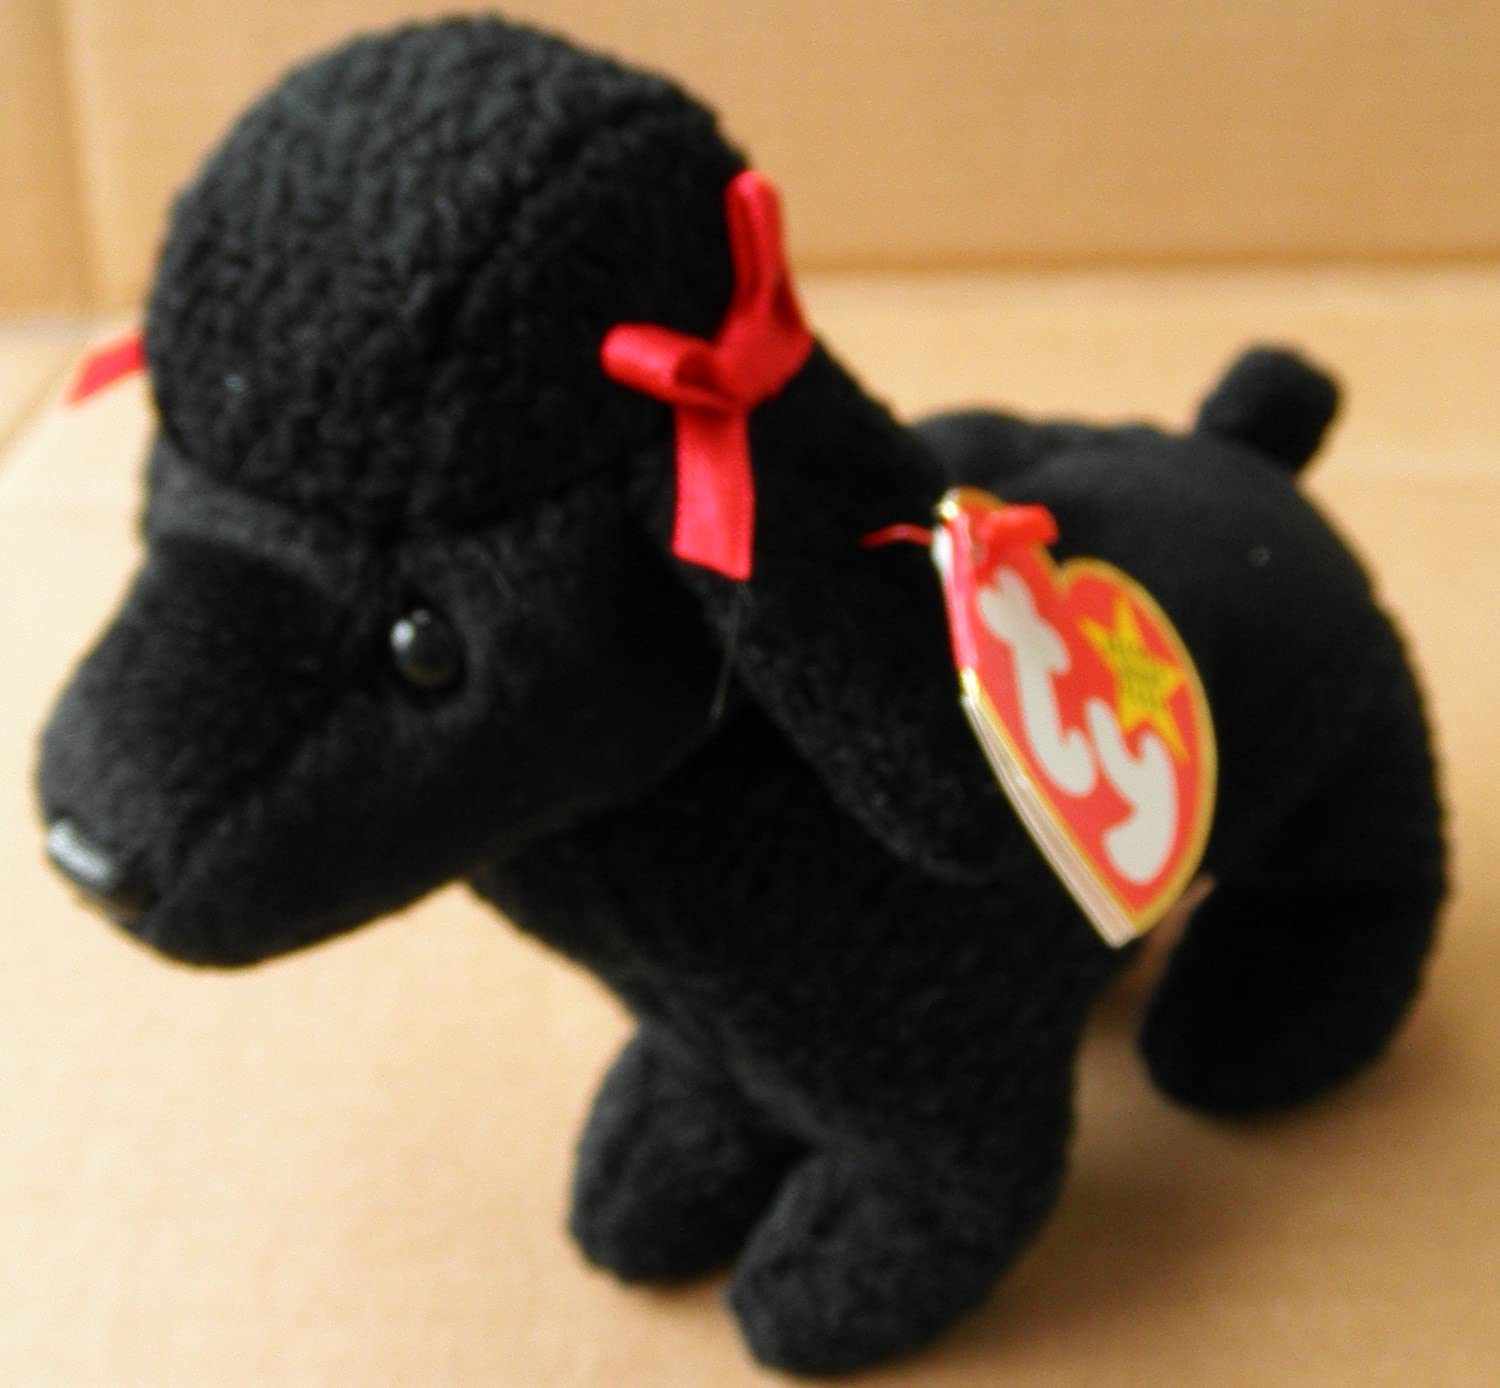 Amazon.com  TY Beanie Babies GiGi the Poodle Dog Plush Toy Stuffed Animal  by Unknown  Toys   Games 33e77ec6446